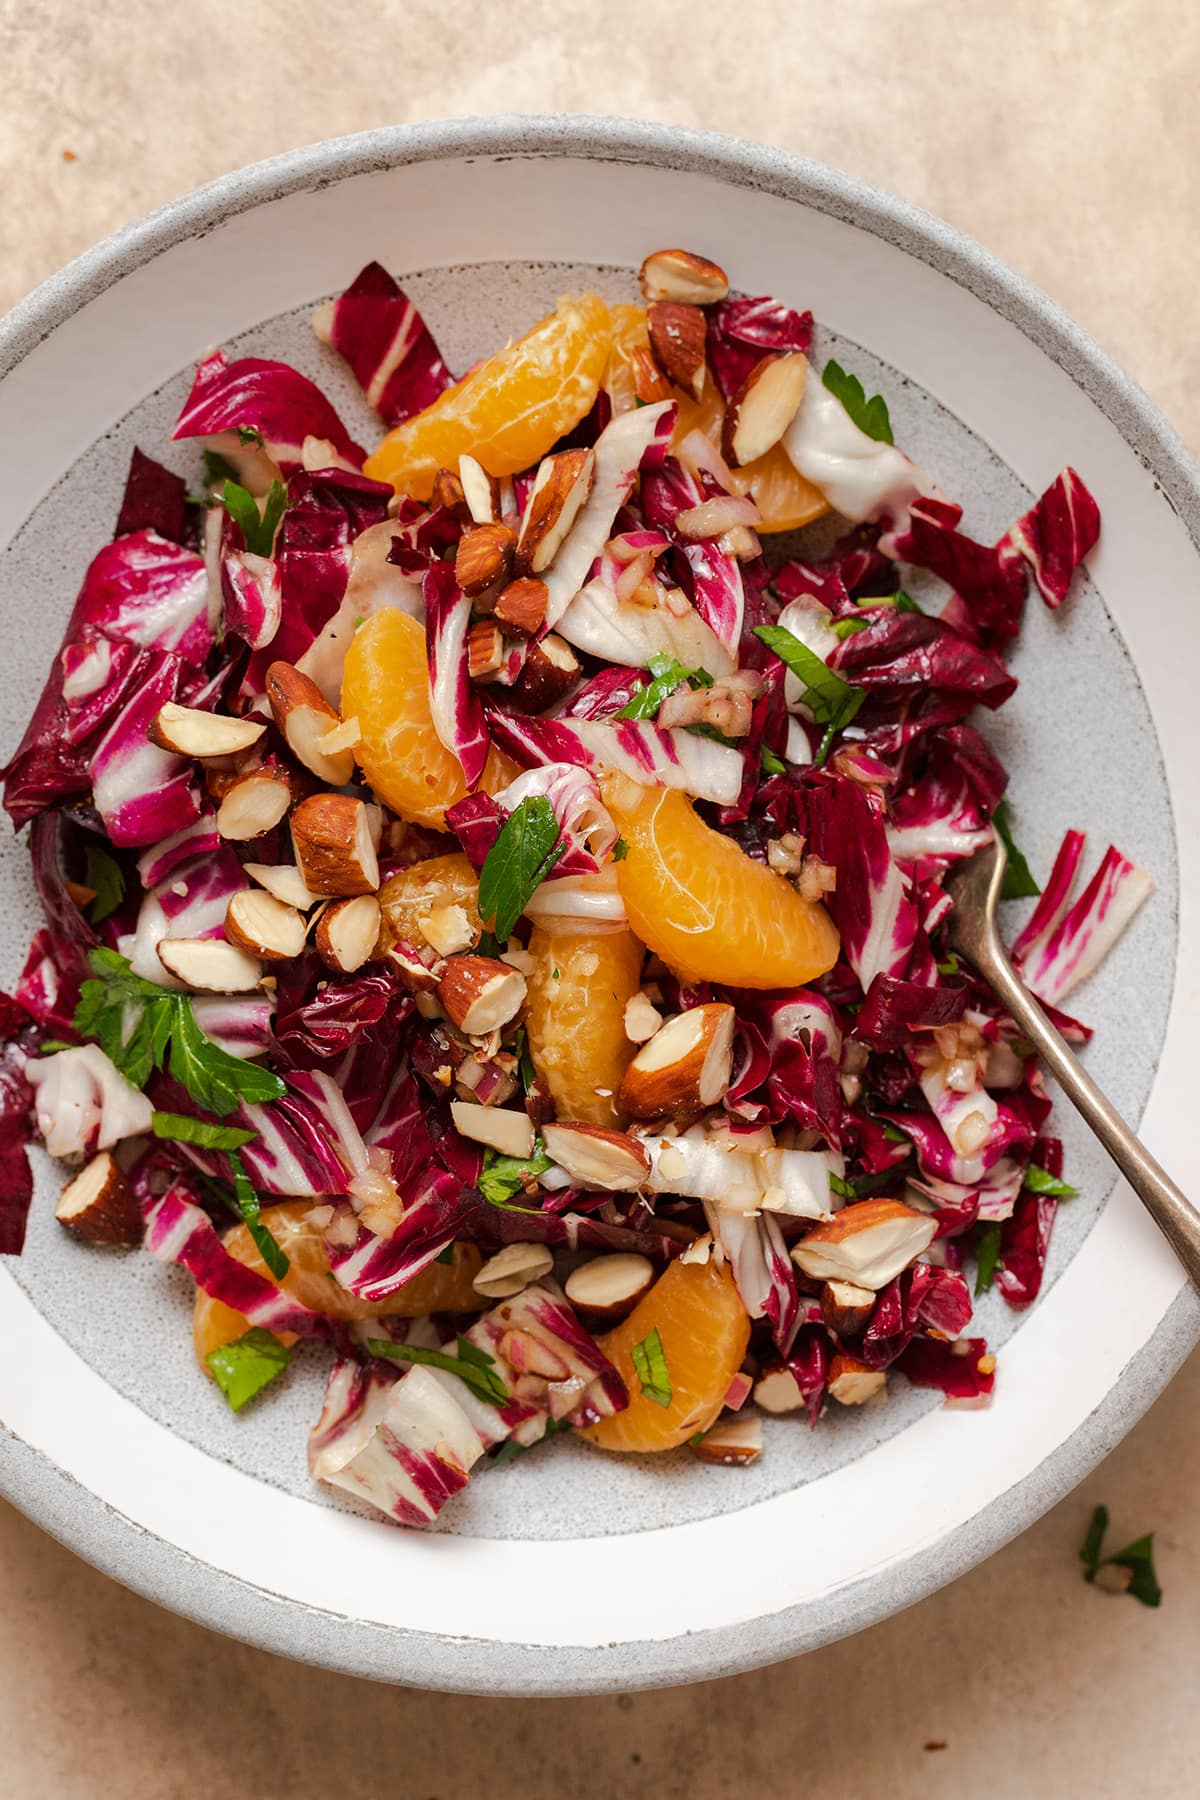 A close up shot of the Radicchio Clementine Salad shown on a shallow grey bowl with a white stripe along the edge. Fork resting on the right side of the bowl in the salad.